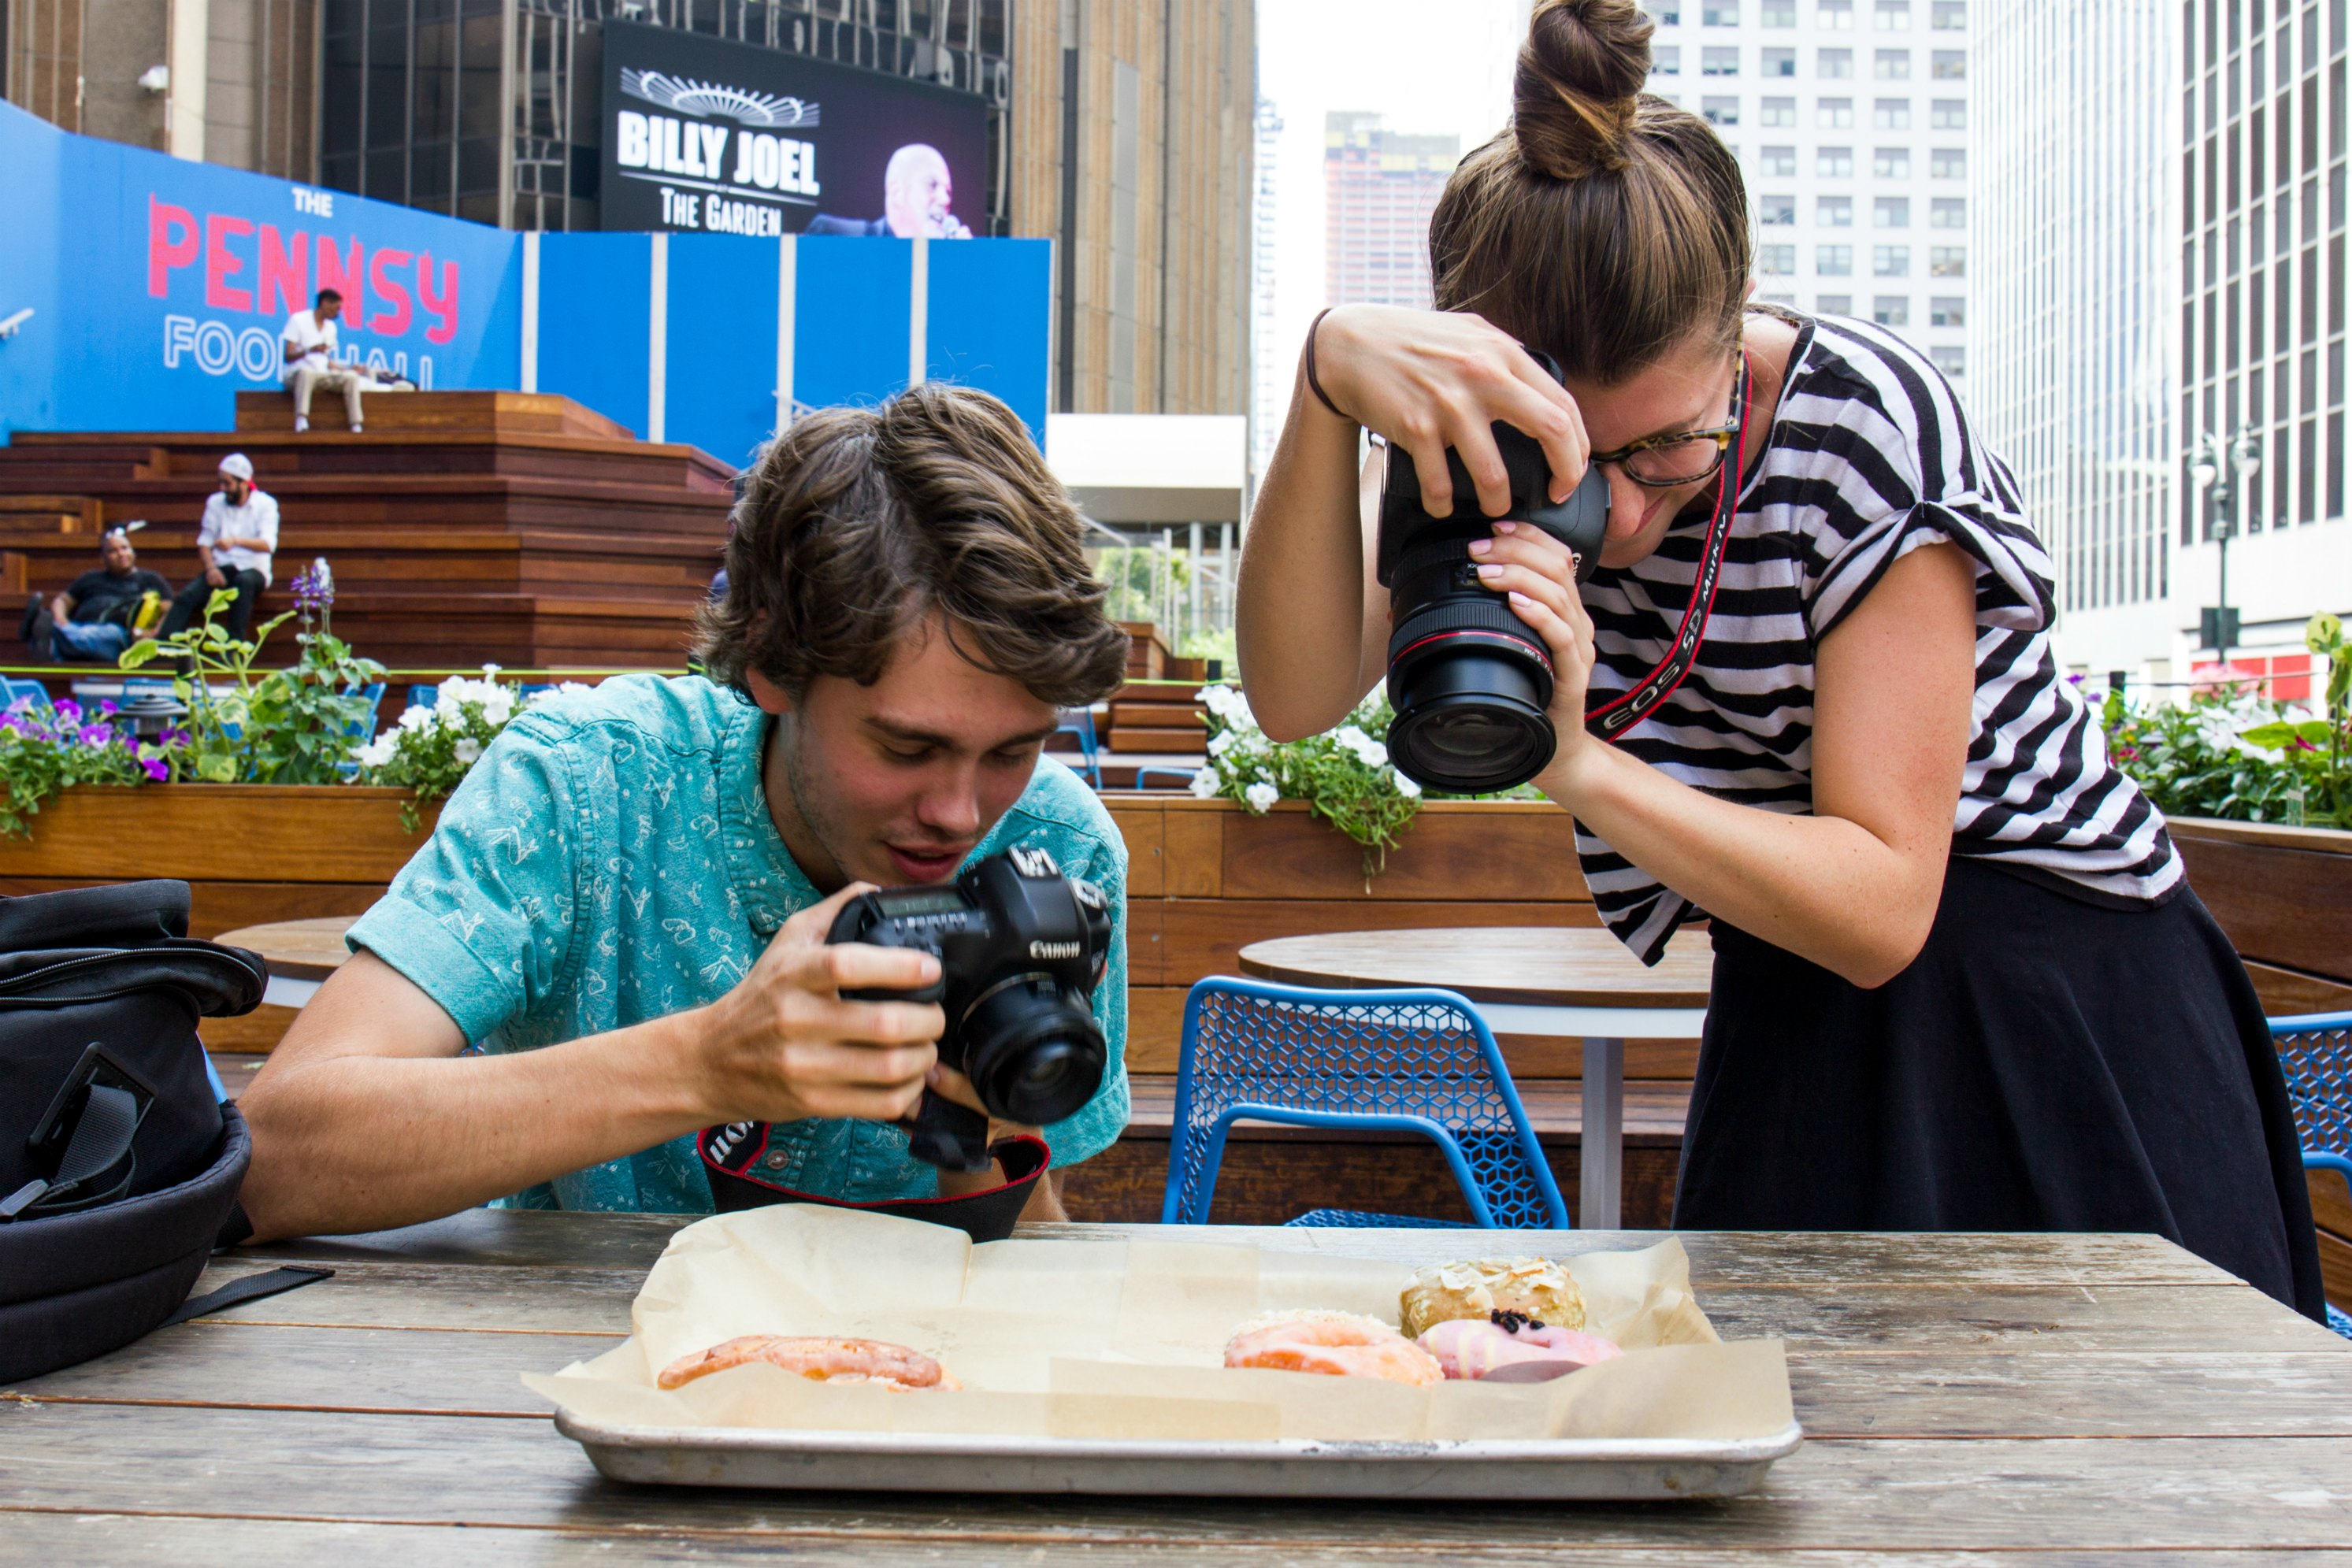 Summer Interns - Food Photo Shoot